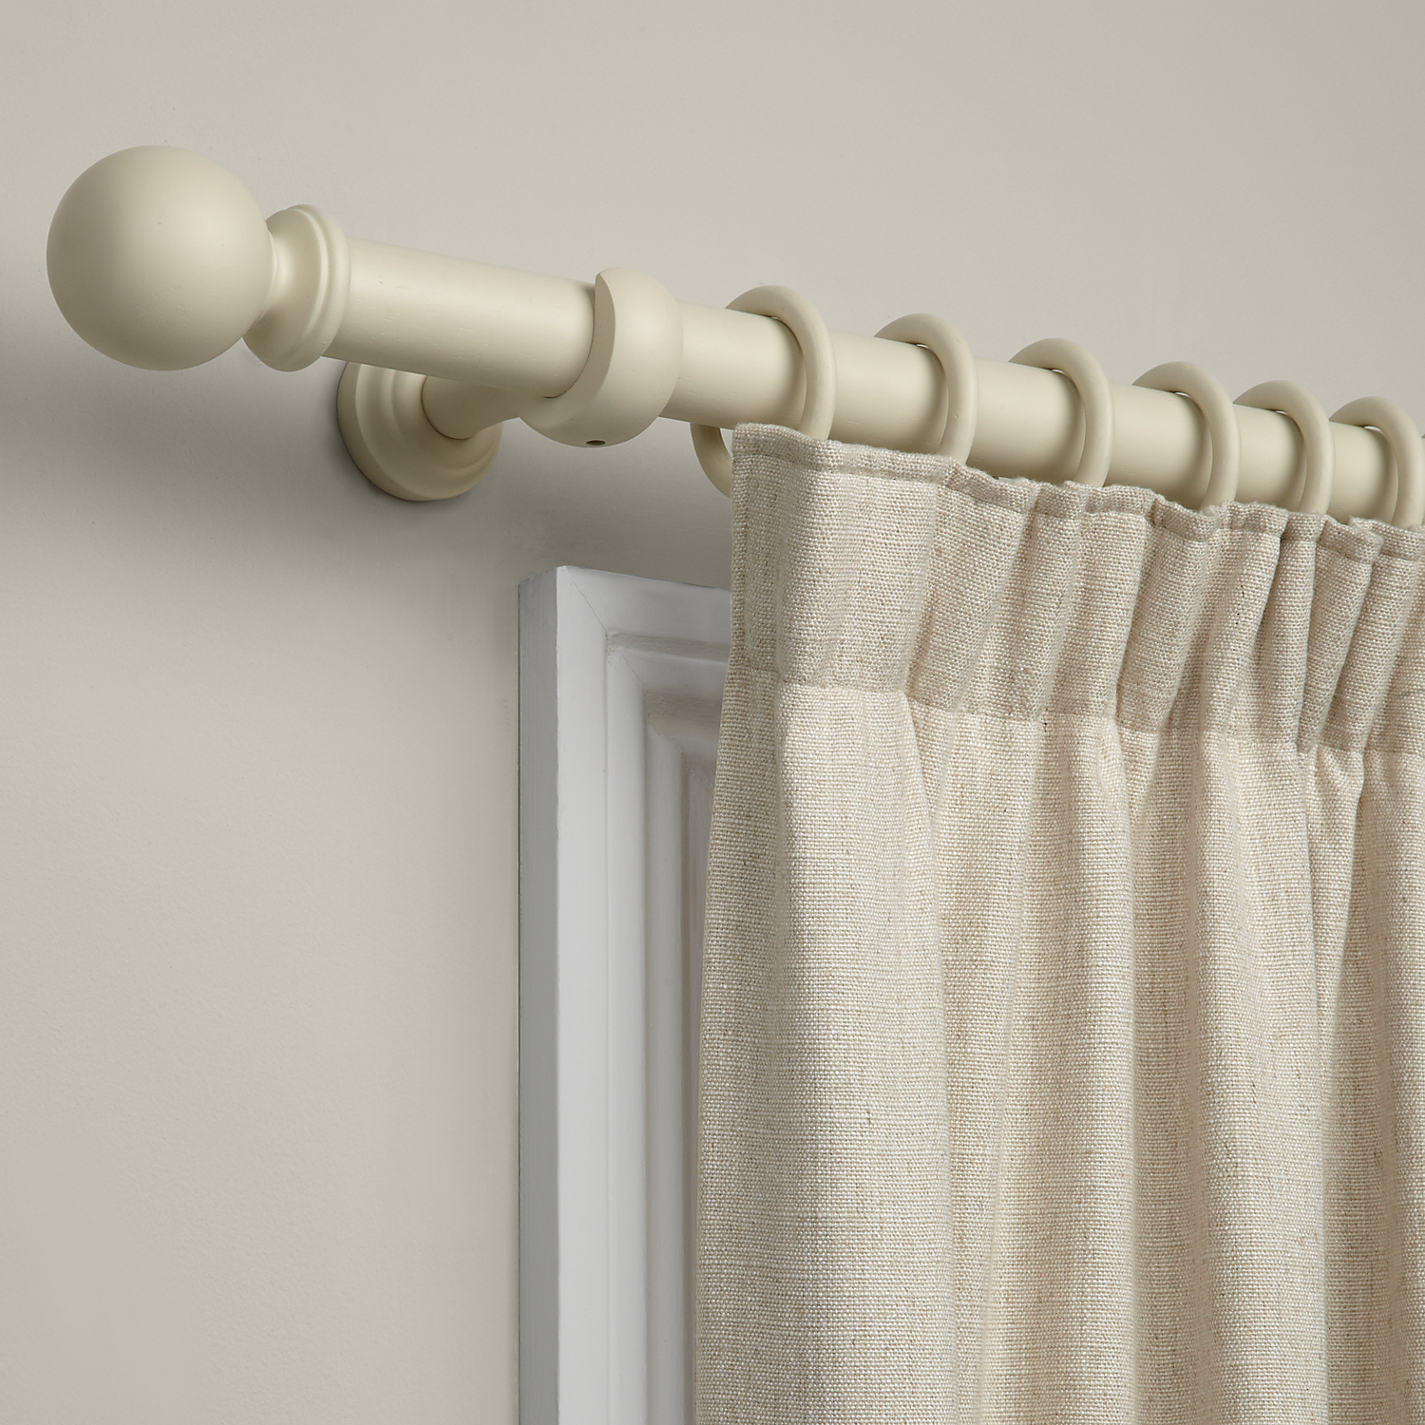 Buy John Lewis Curtain Pole Kit, Cream, Dia.35mm | John Lewis